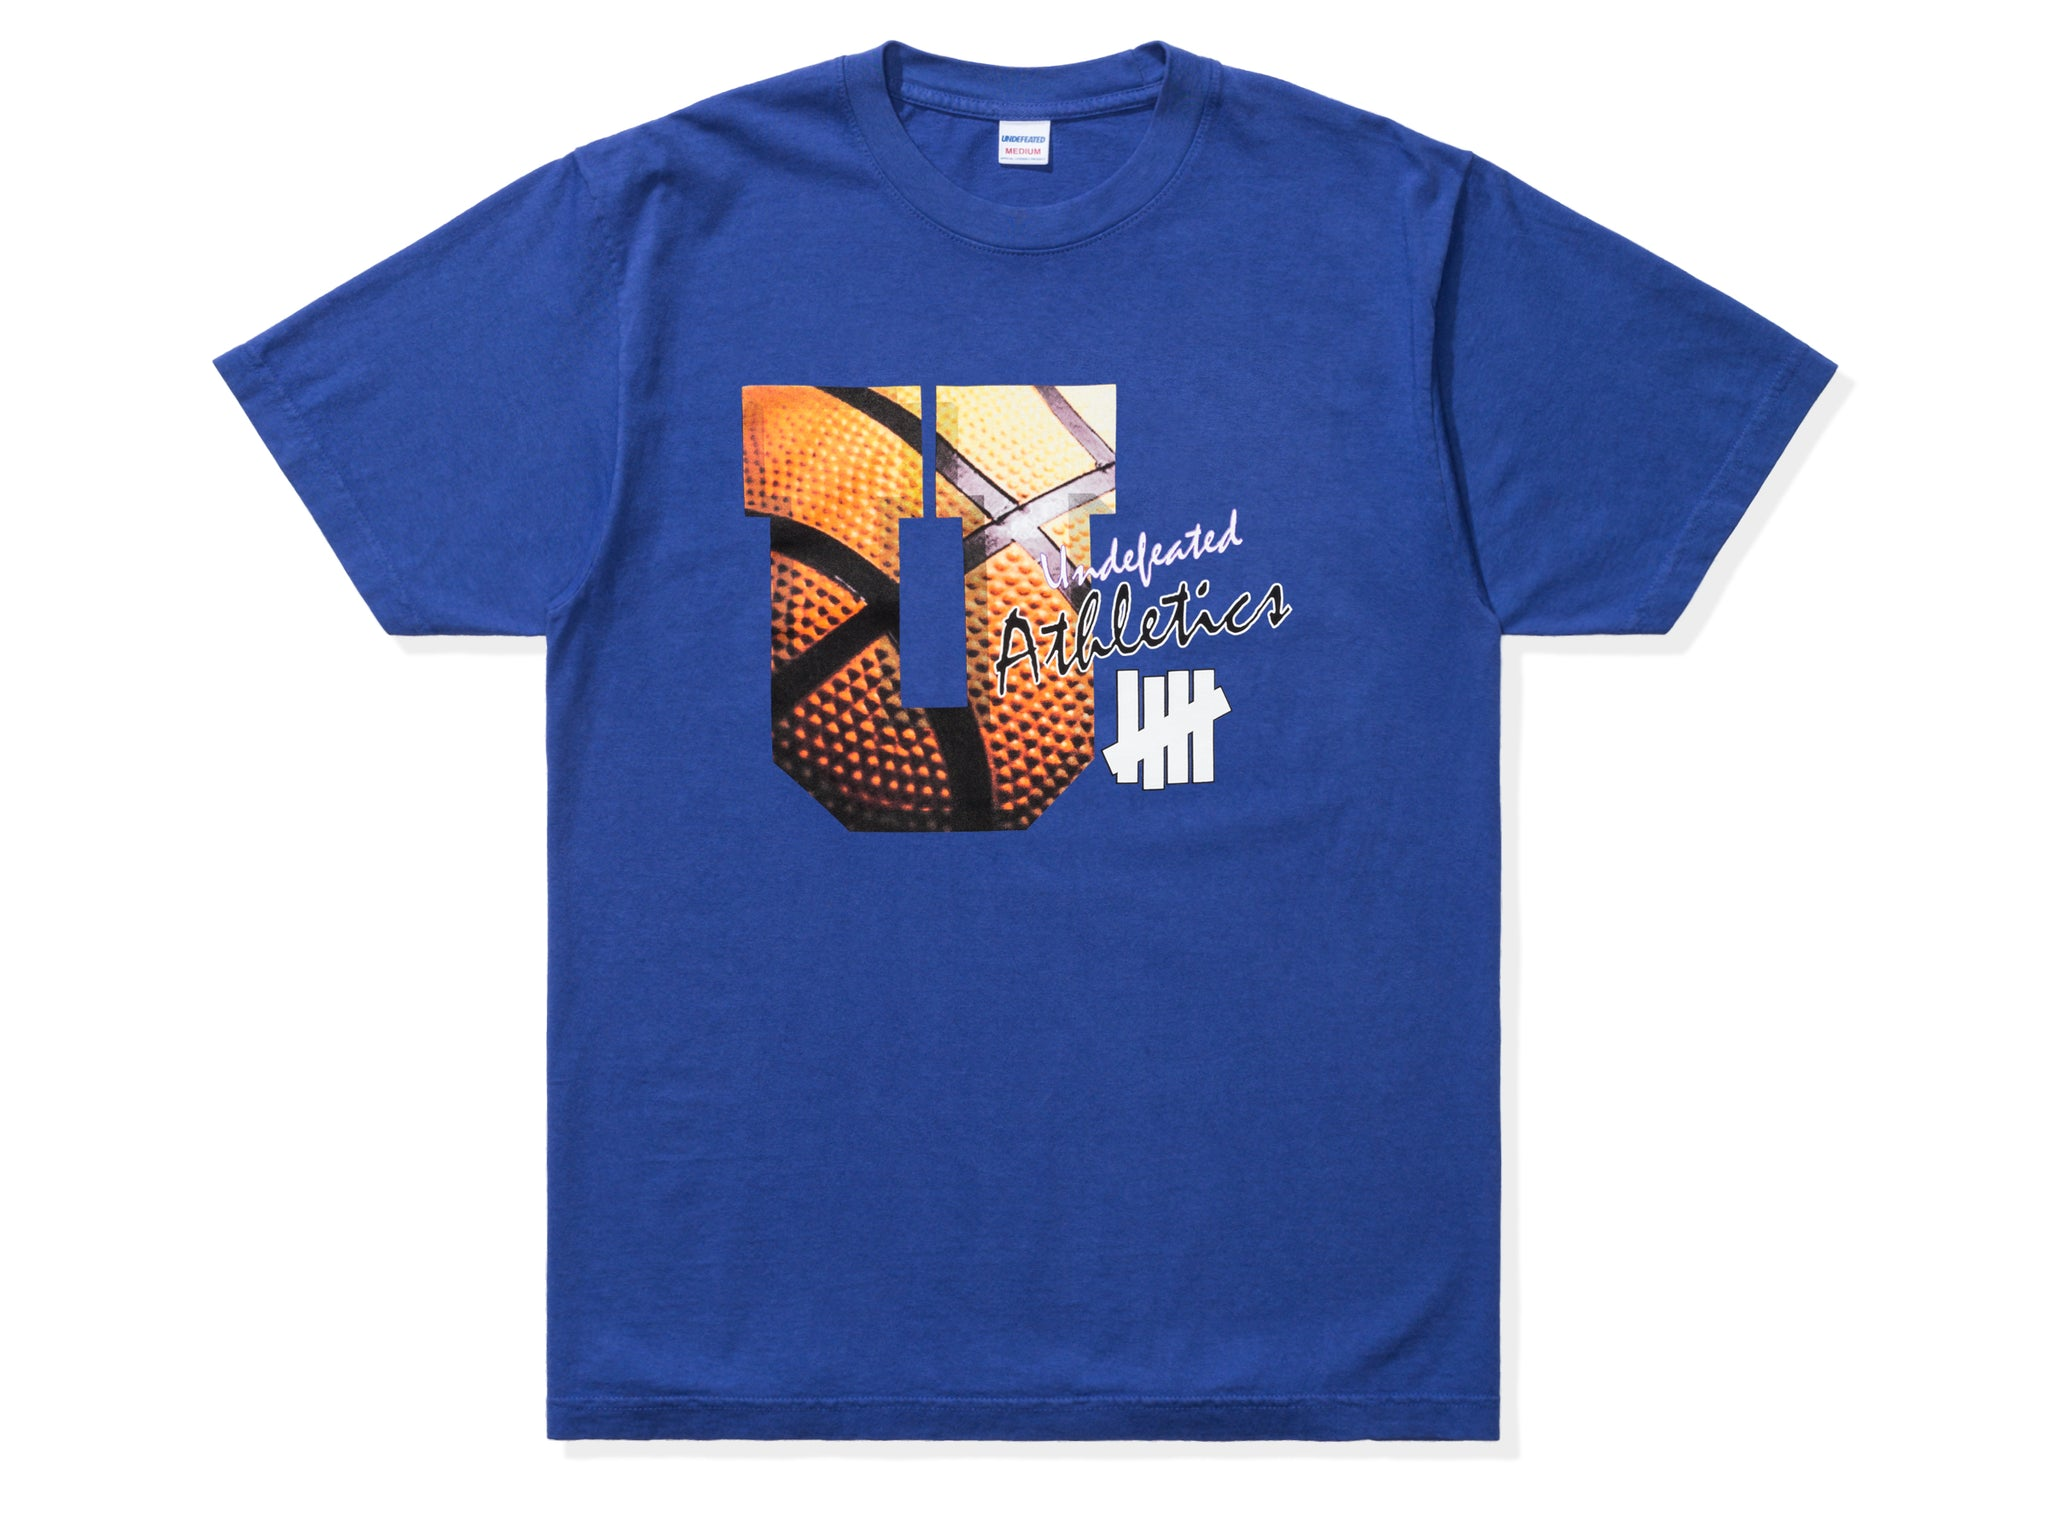 UNDEFEATED HOOPS S/S TEE